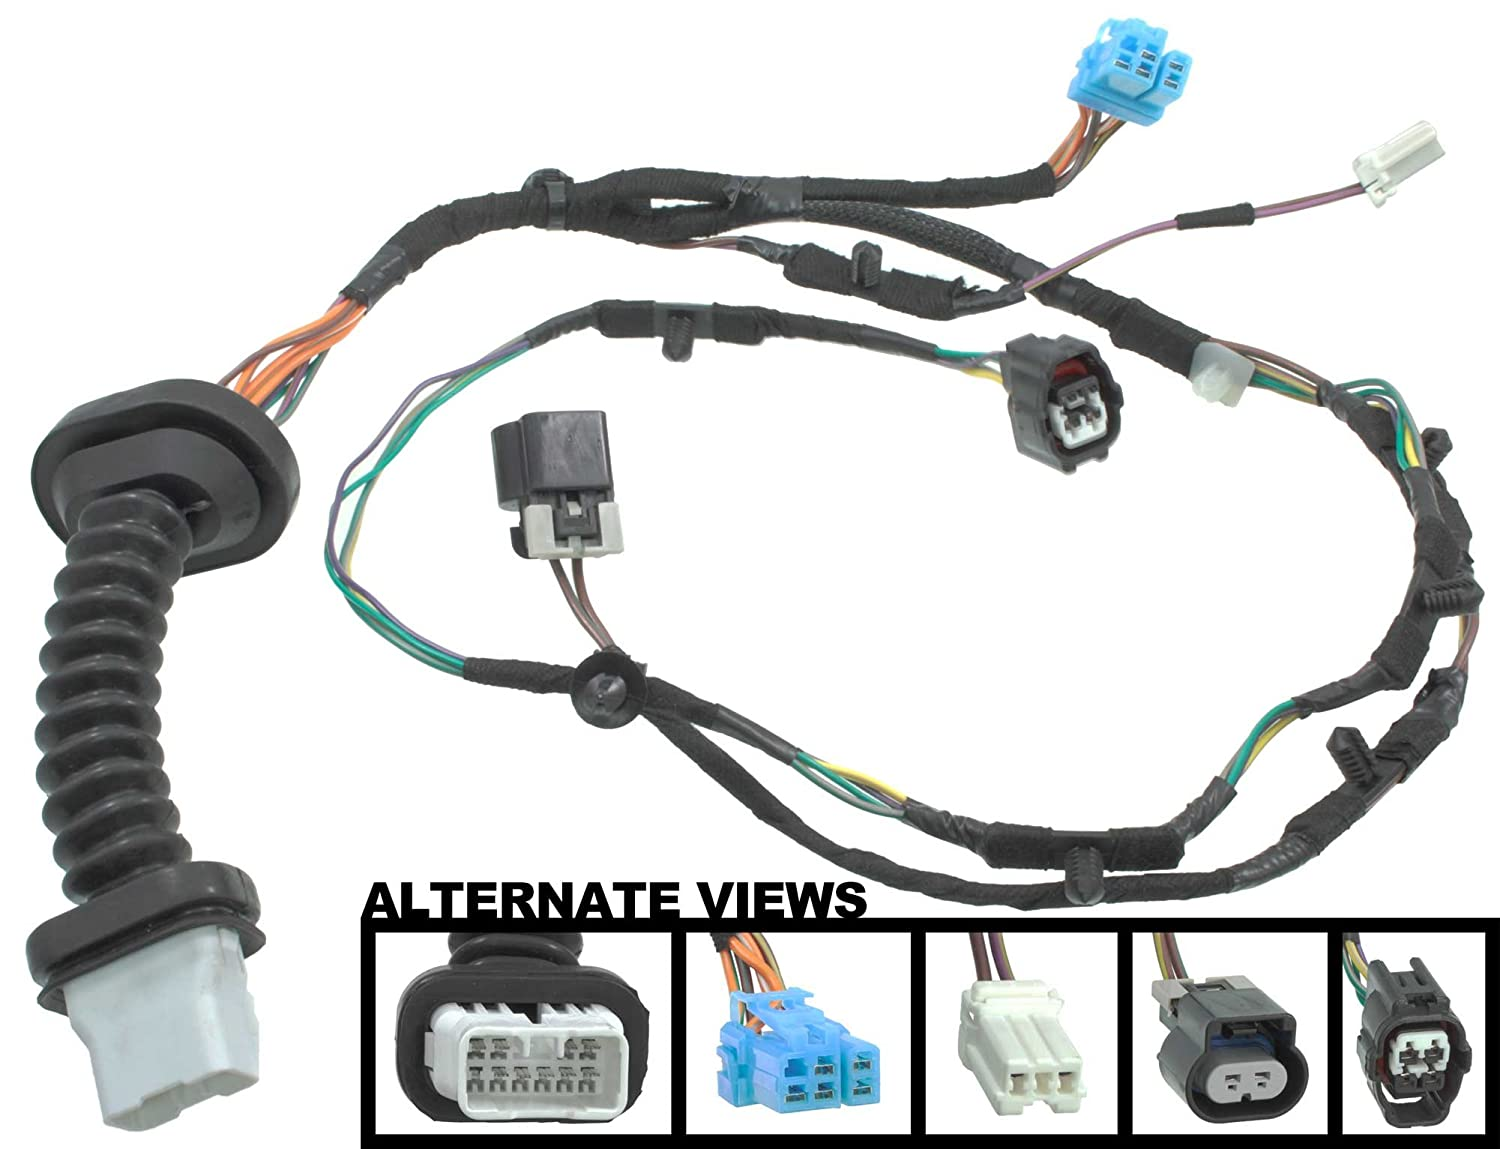 71fJrC9anCL._SL1500_ amazon com apdty 756617 power door lock wiring pigtail connector 2007 dodge ram rear door wiring harness at webbmarketing.co